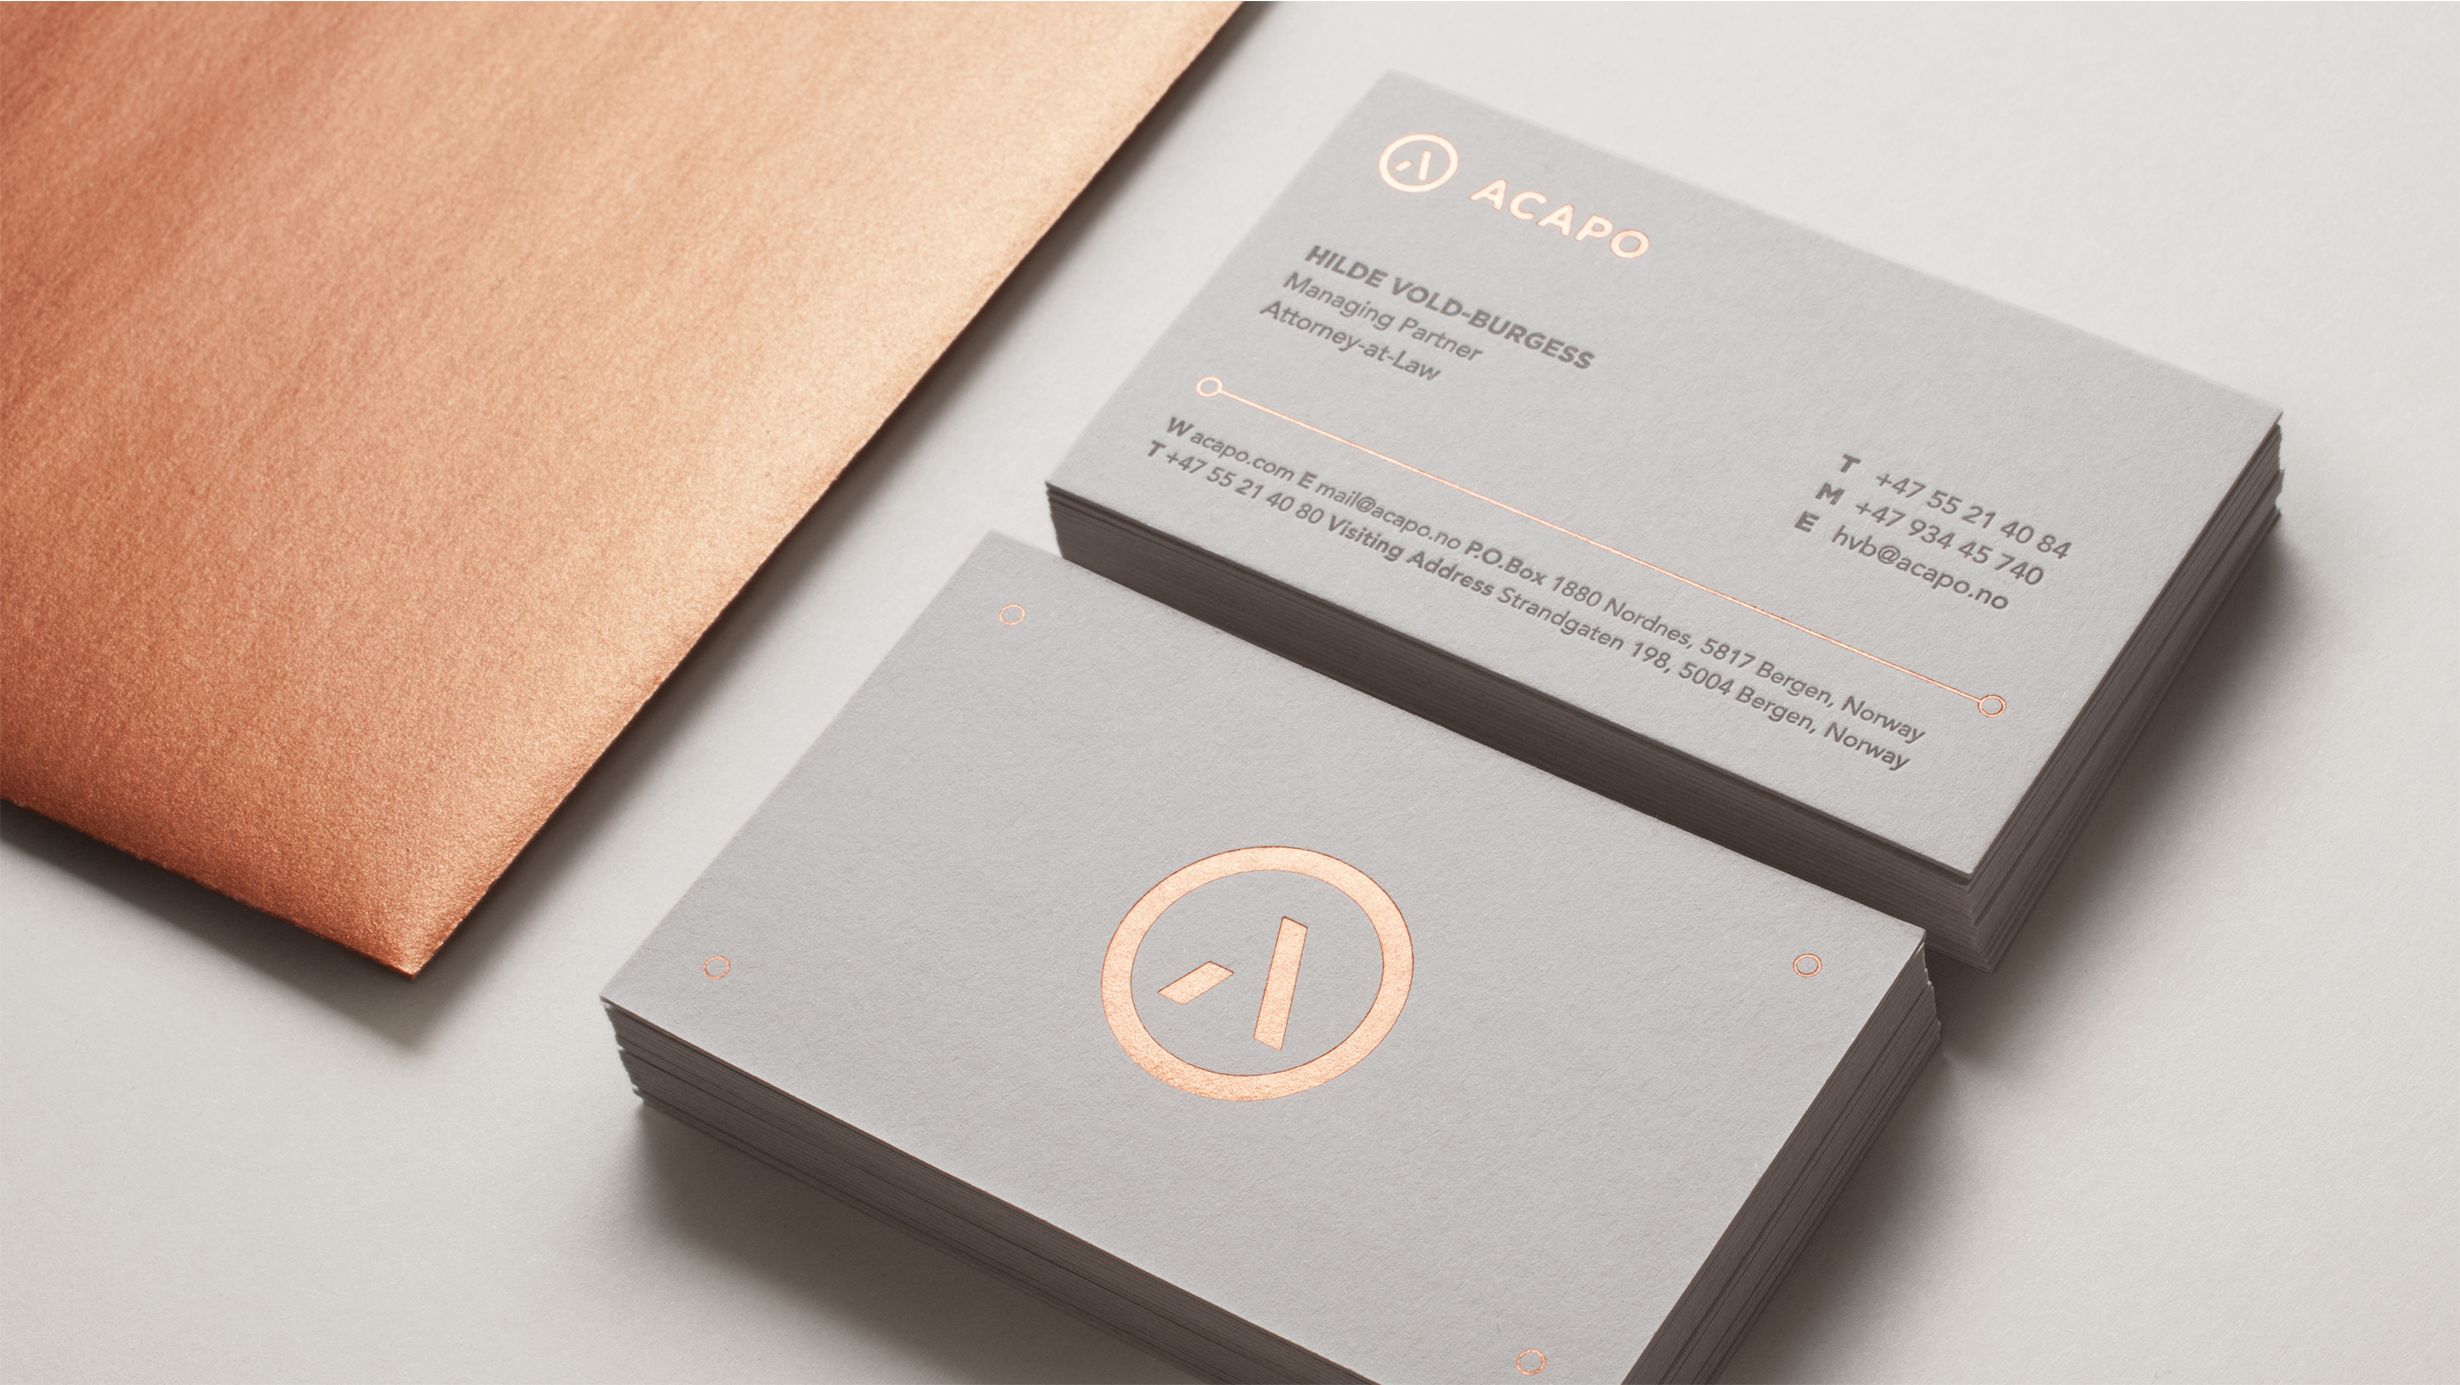 Acapo stationary. Detail photo of business card with copper foil embossing and copper envelope